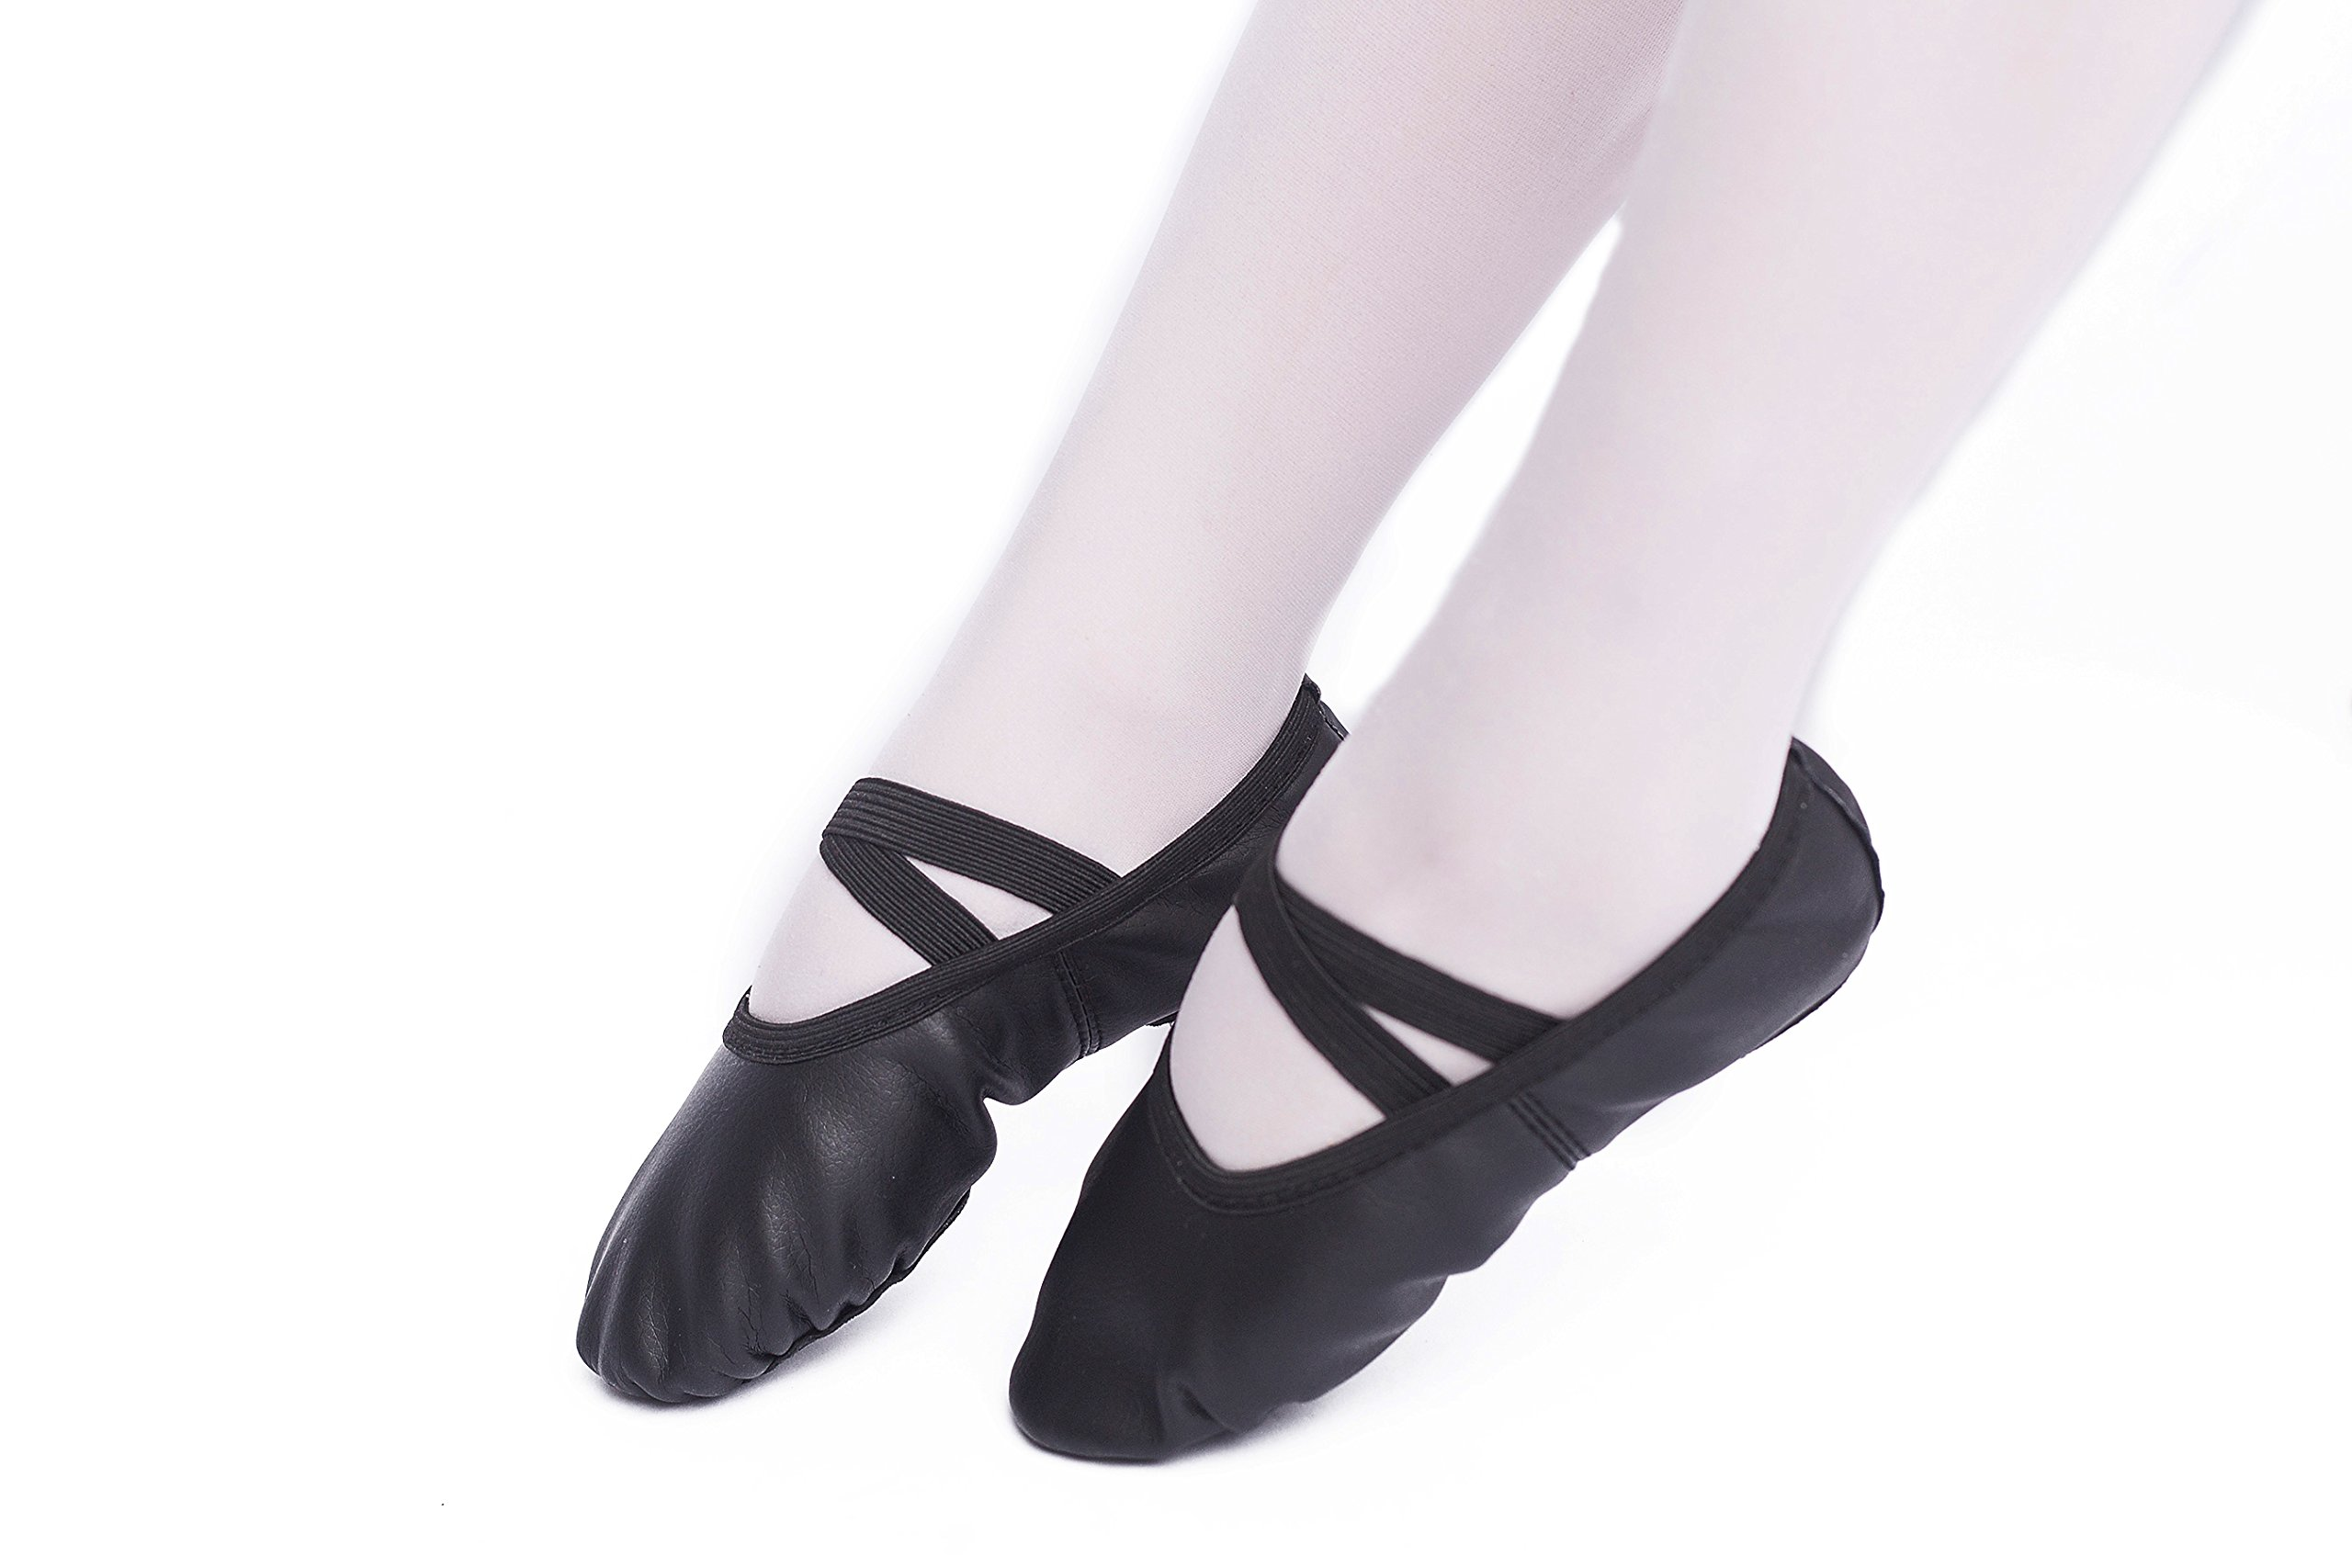 FERMAID Leather Ballet Dance Shoes Girls Pointe Shoes Slippers Flats Yoga Shoe(Toddler/Little Kid/Big Kid/Women) (215, Black) by FERMAID (Image #2)